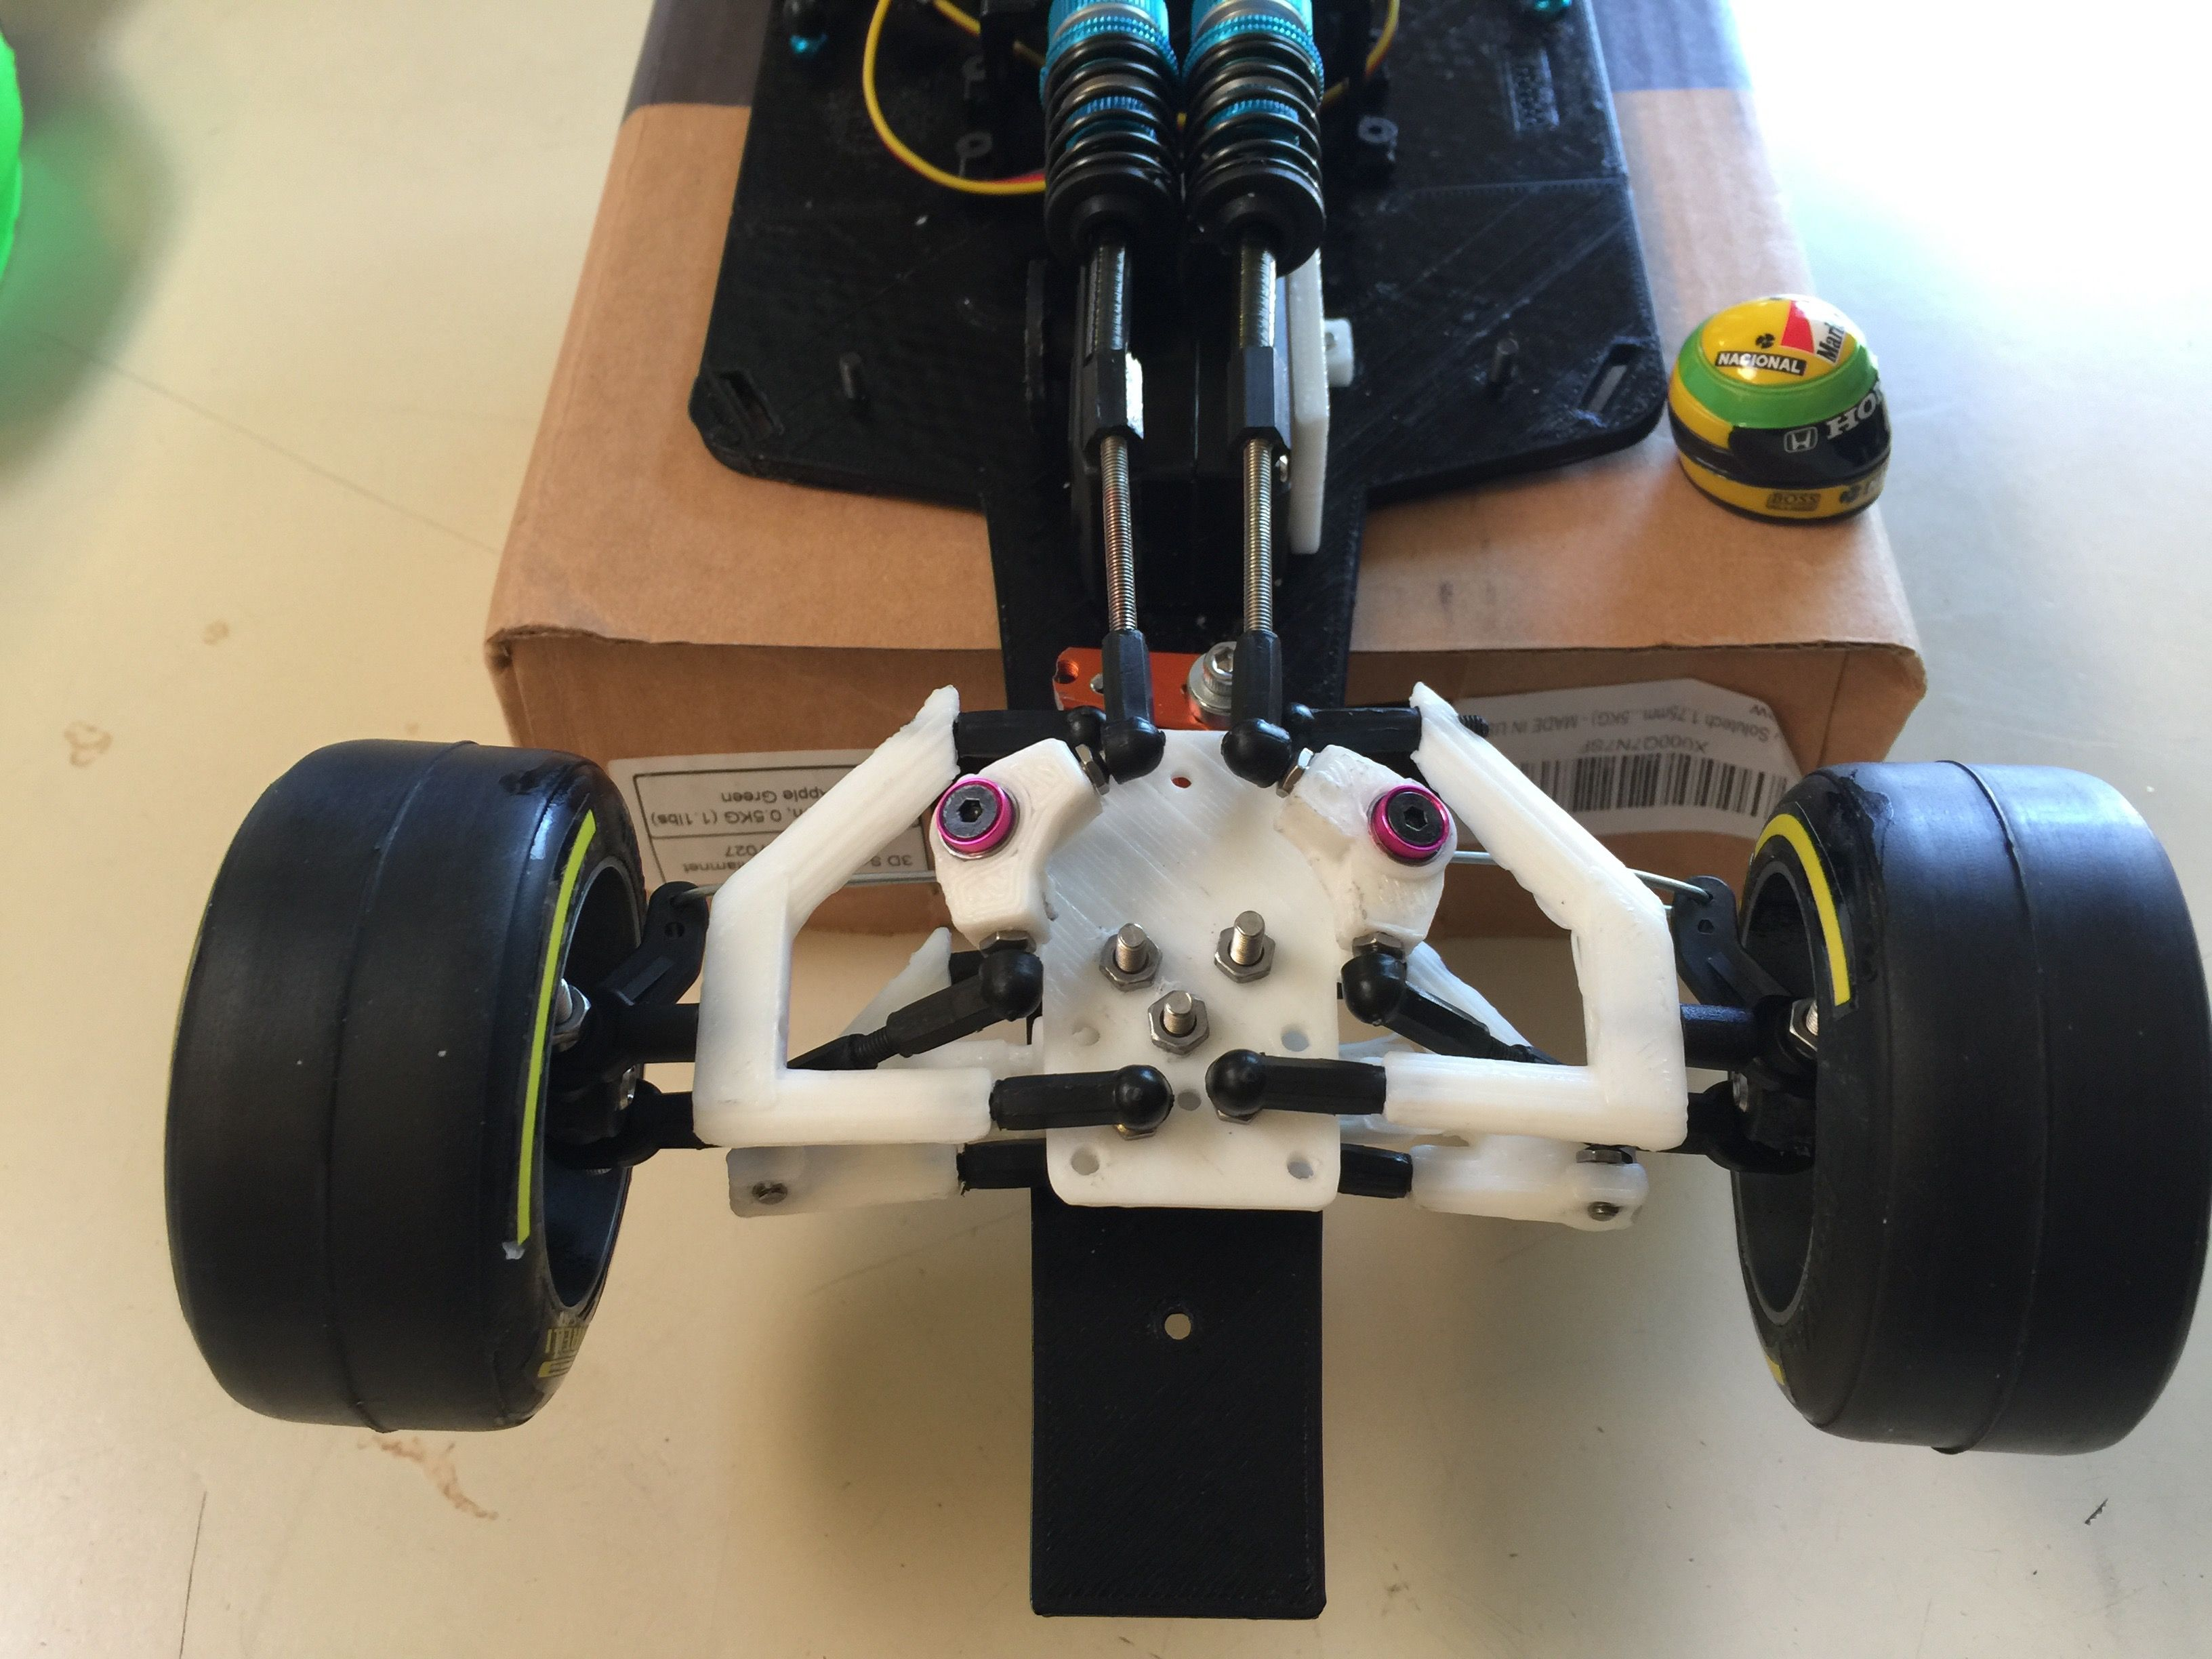 RS-01 Version B OpenRC F1 Fully Adjustable Racing Suspension